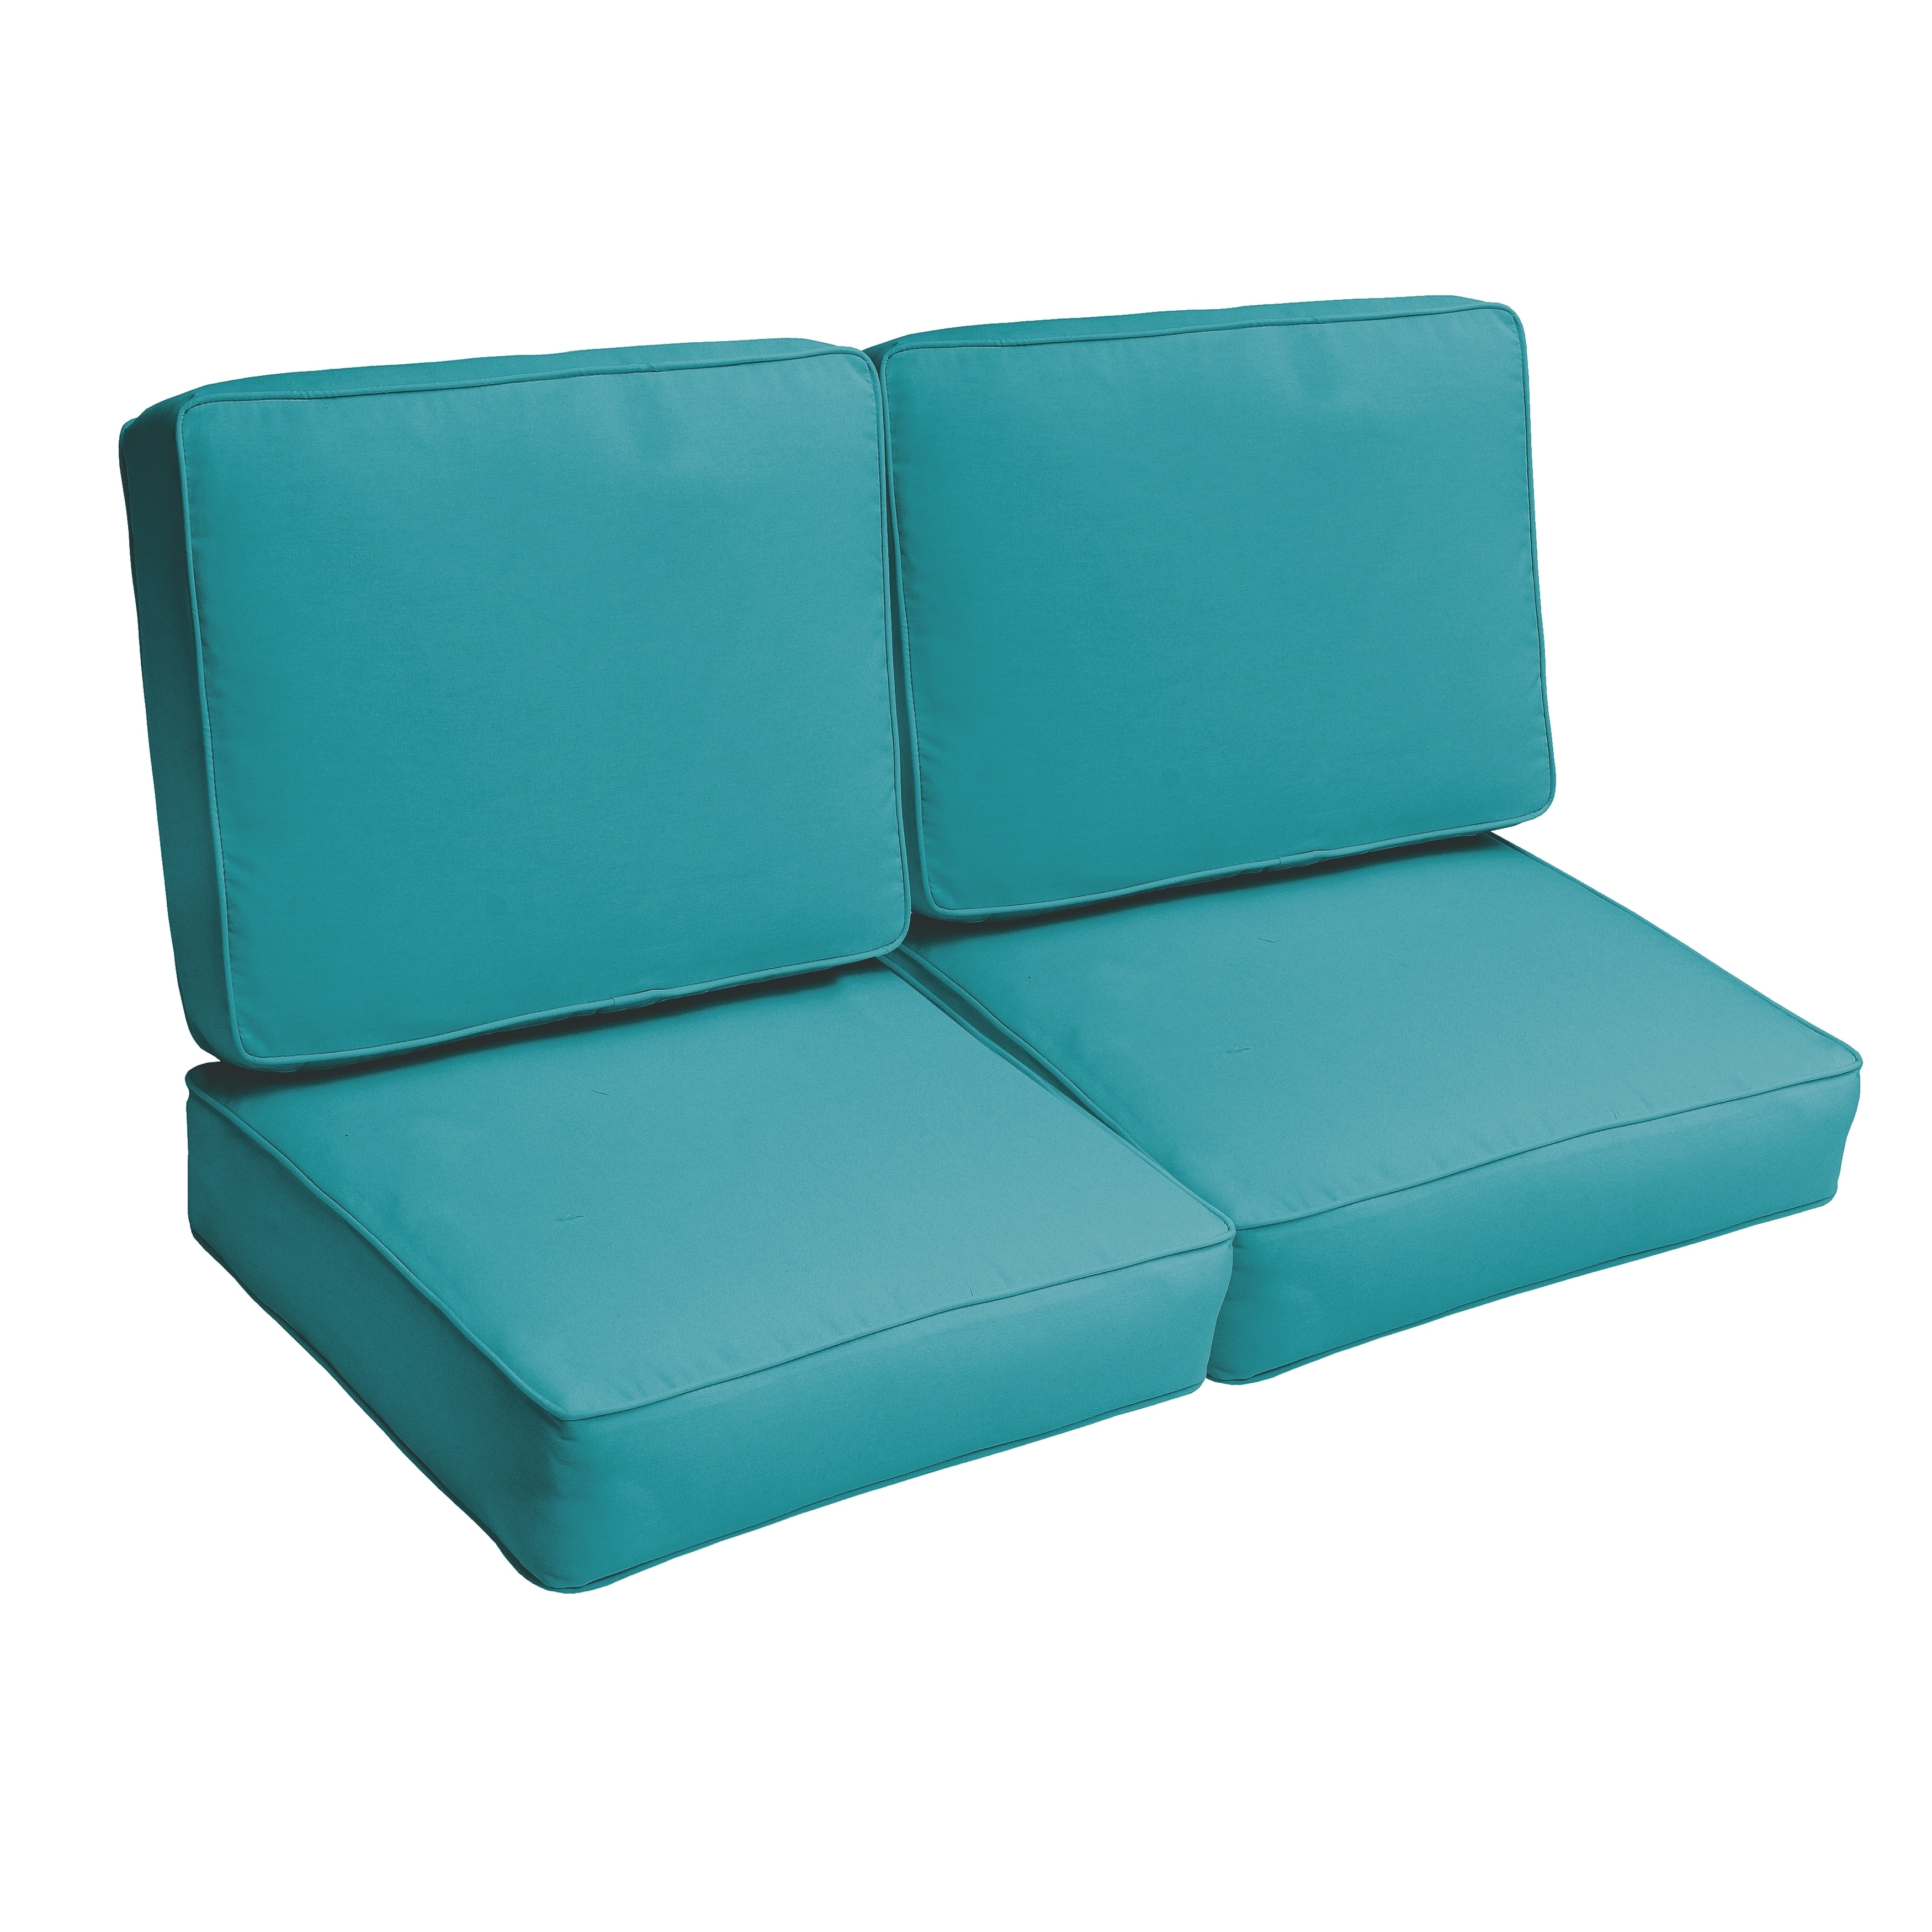 Shop Black Friday Deals On Sloane Aqua Blue 47 Inch Indoor Outdoor Corded Loveseat Cushion Set Overstock 11390117